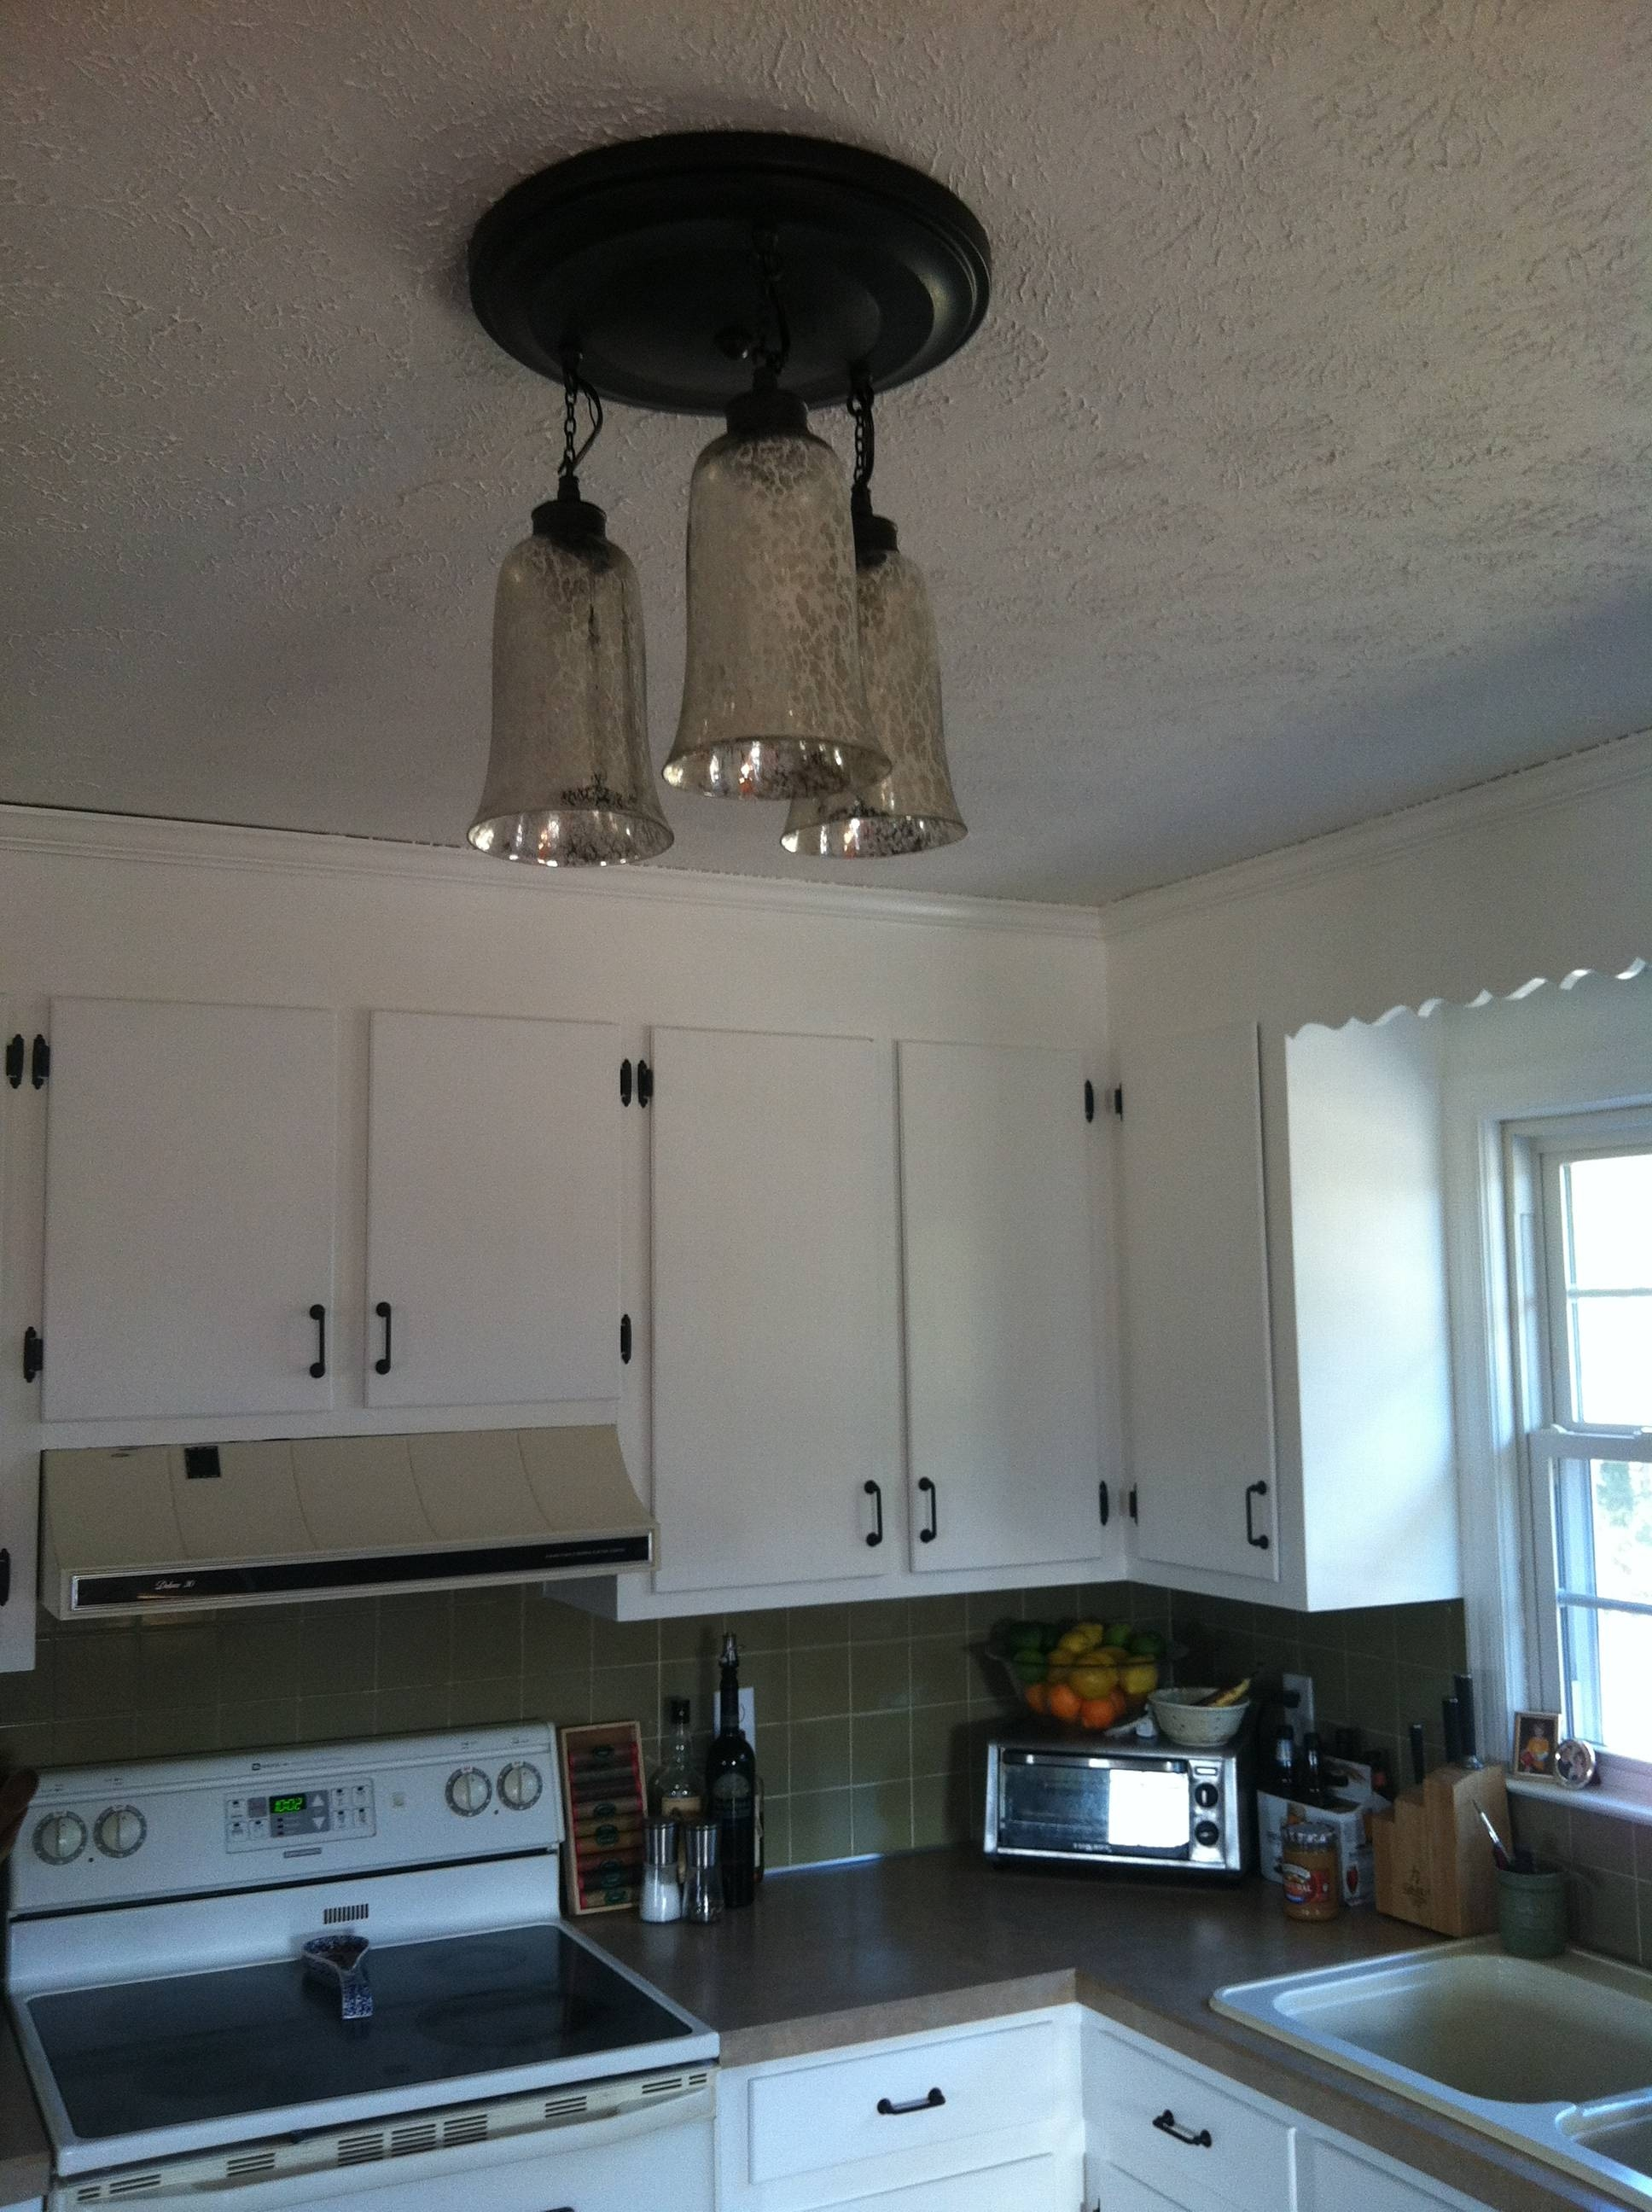 Light Fixtures | Small, But Valuable. with regard to Mercury Glass Lighting Fixtures (Image 8 of 15)